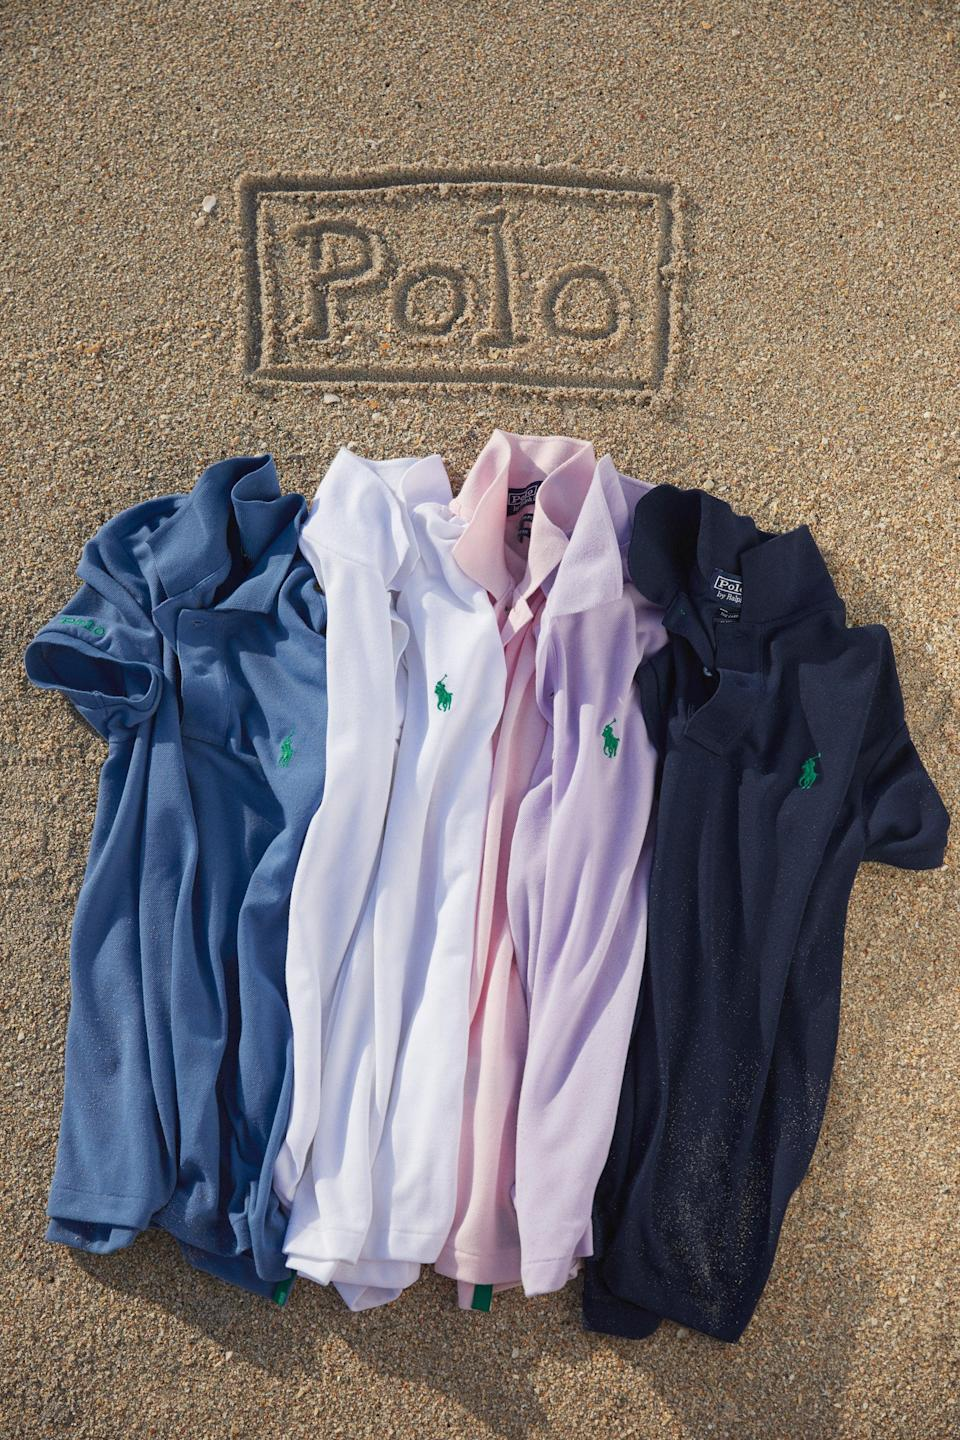 "Each of Ralph Lauren's Earth Day polos is made using on average 12 plastic water bottles, with the brand pledging 175 million bottles to be recycled by 2025. <br> <br> <strong>Ralph Lauren</strong> Earth Day Polo, $, available at <a href=""https://go.skimresources.com/?id=30283X879131&url=https%3A%2F%2Fwww.ralphlauren.com%2Fwomen-clothing-polo-shirts%2Fthe-earth-polo%2F0041780511.html%3FpdpR%3Dy"" rel=""nofollow noopener"" target=""_blank"" data-ylk=""slk:Ralph Lauren"" class=""link rapid-noclick-resp"">Ralph Lauren</a>"